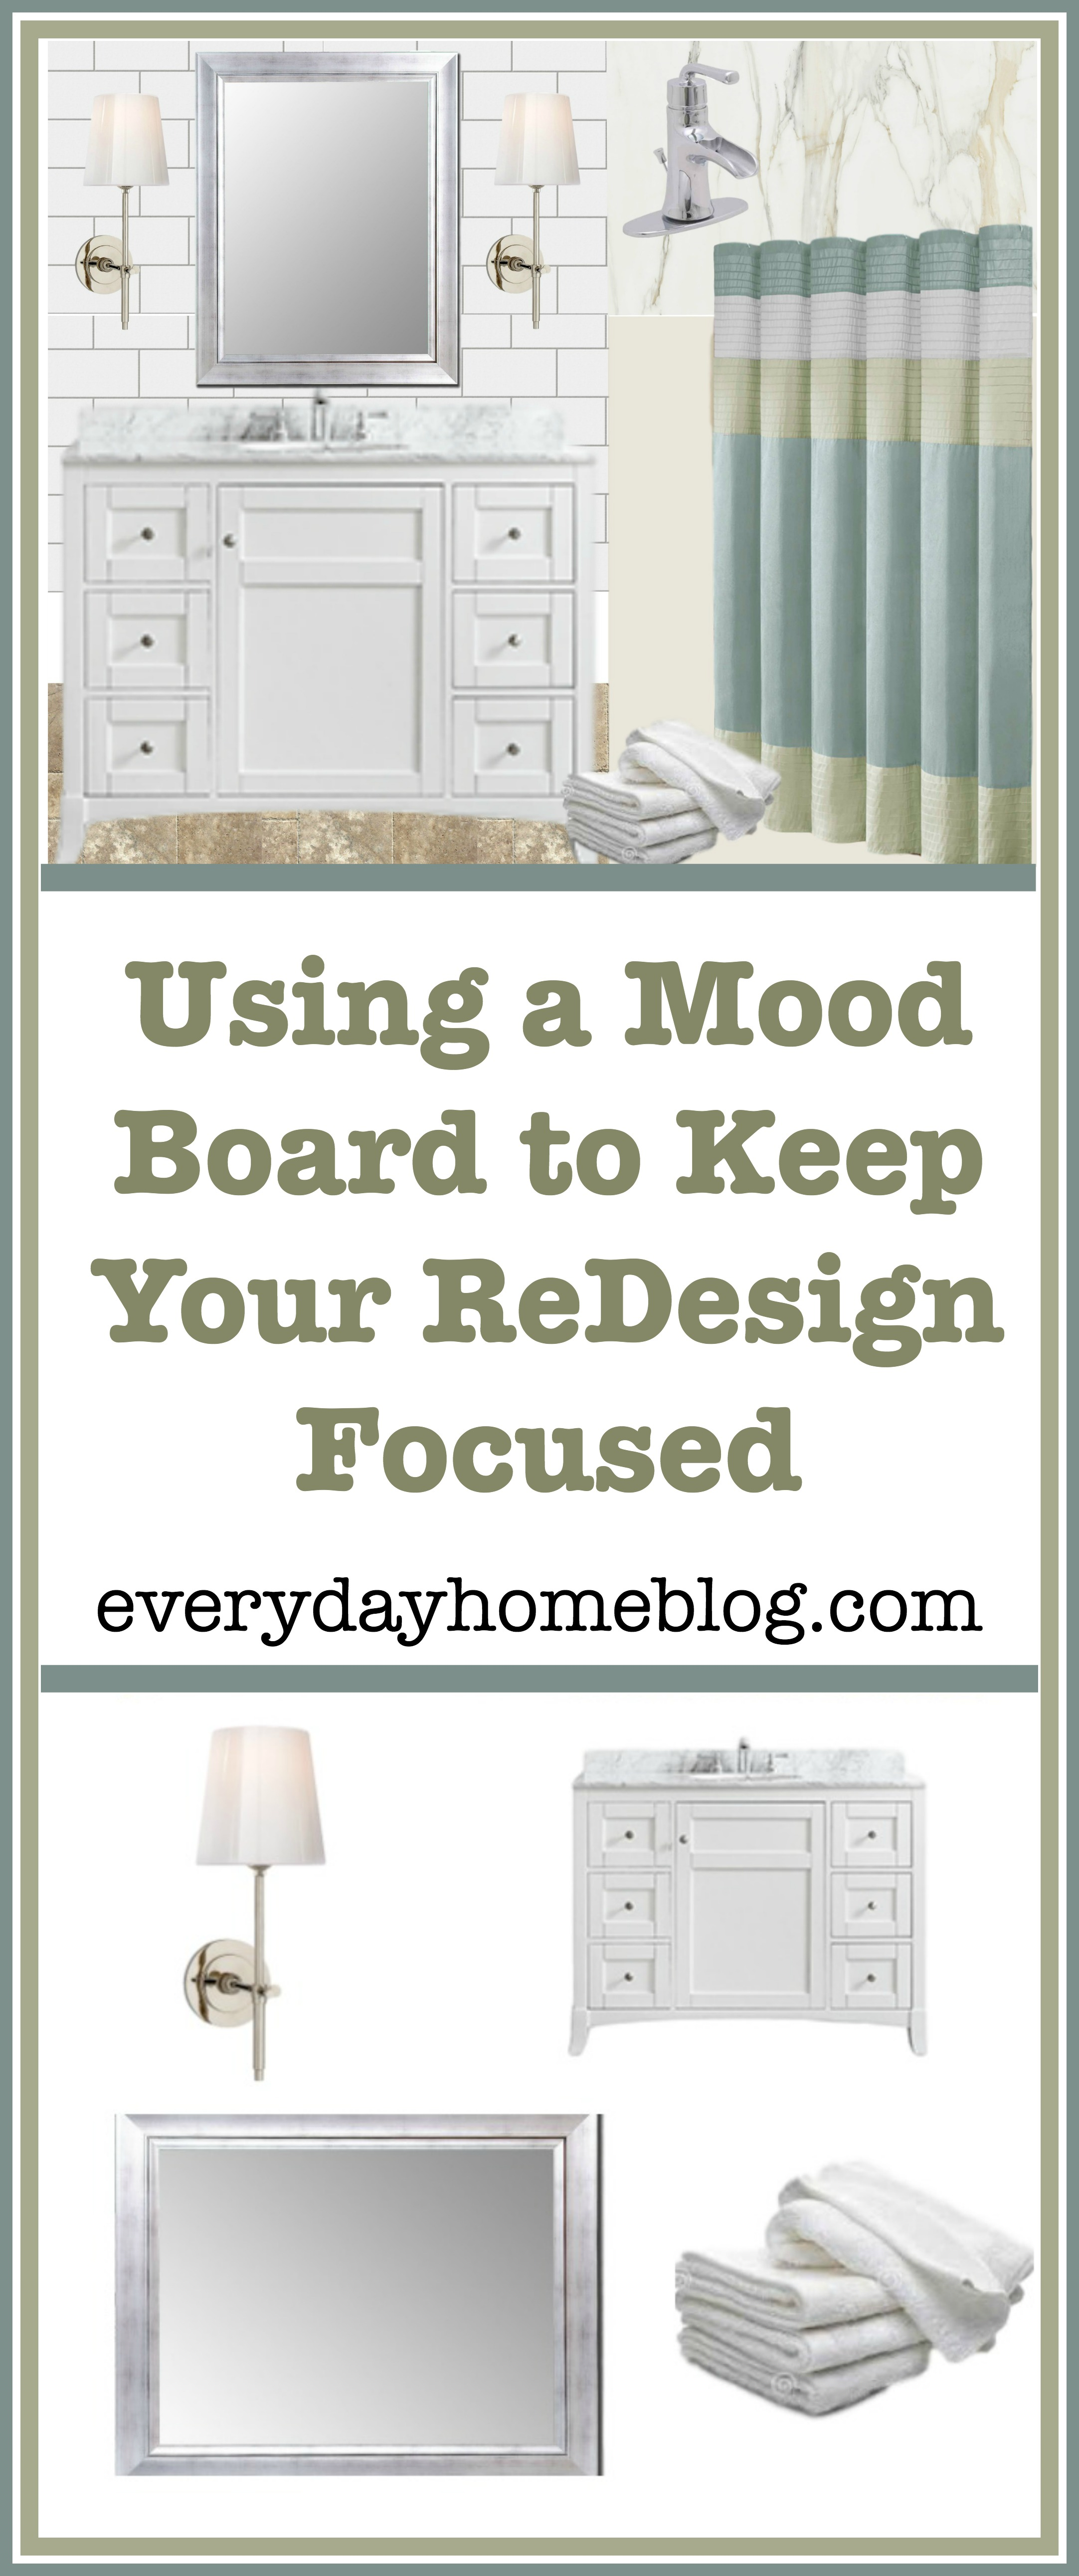 Using a Mood Board to Keep Your ReDesign Focused | The Everyday Home